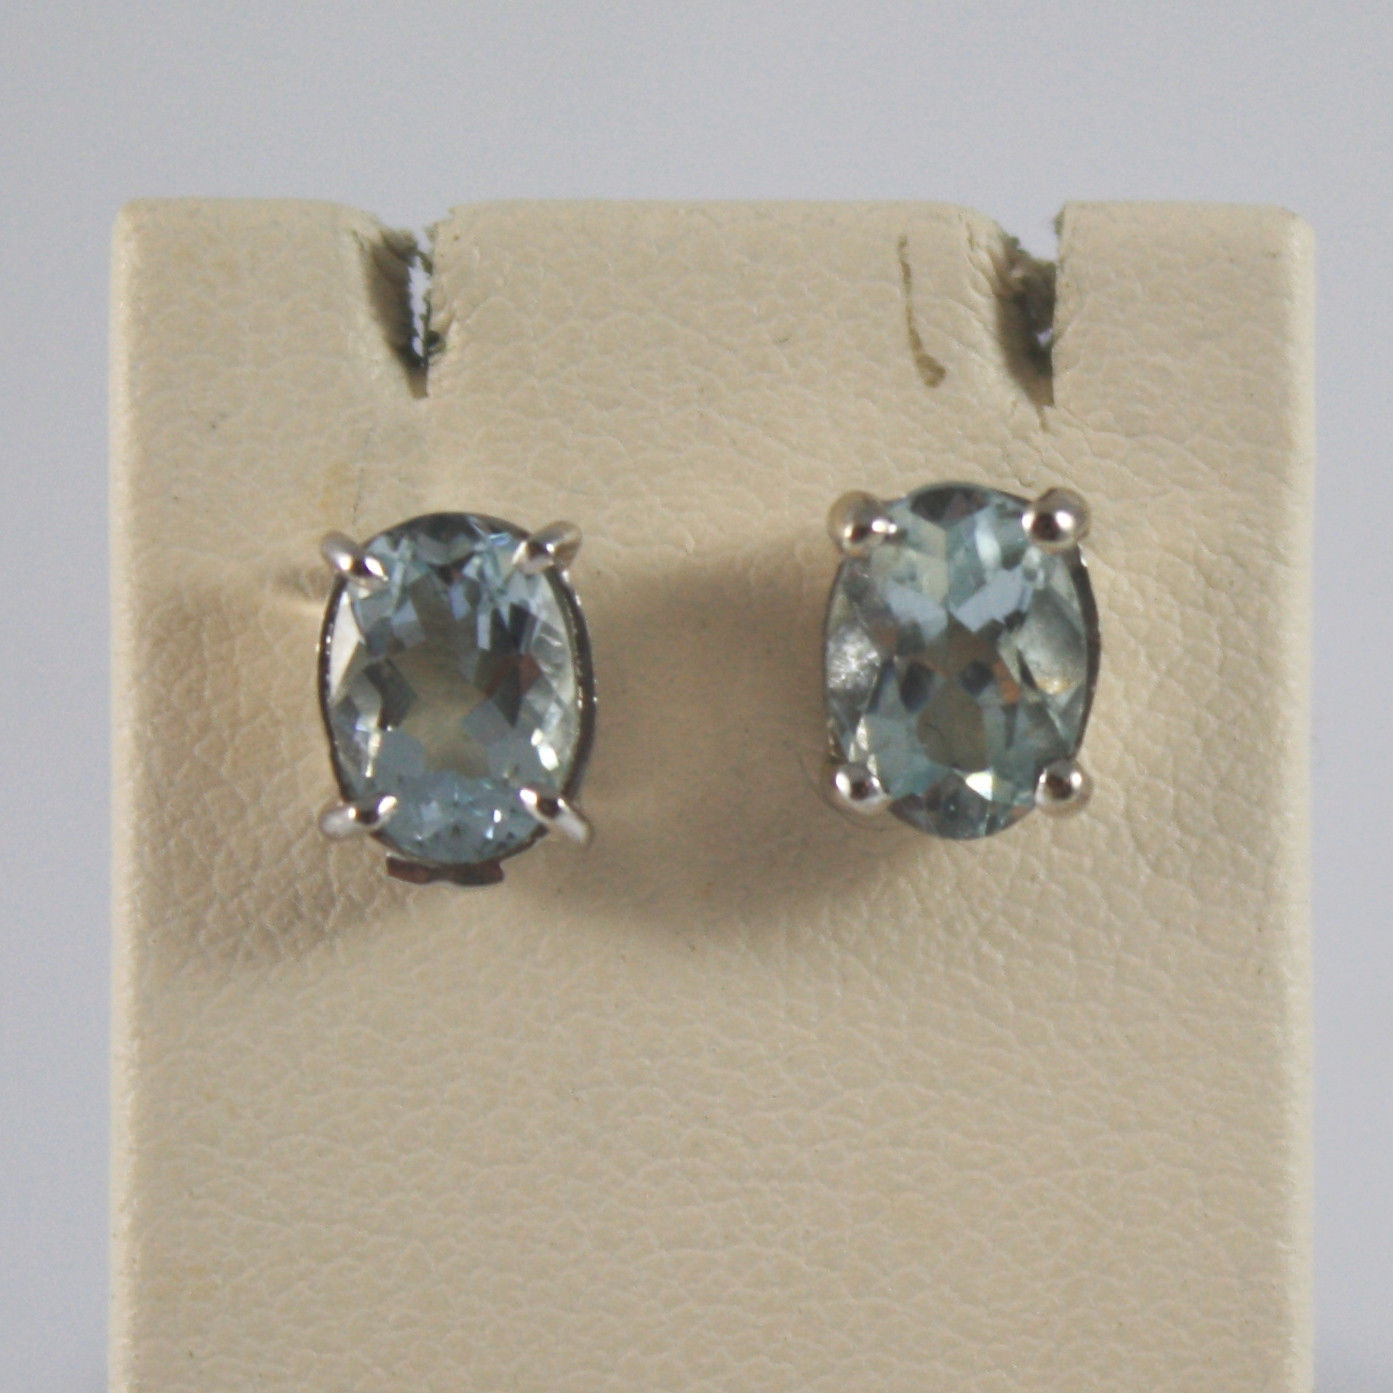 SOLID 18K WHITE GOLD EARRINGS, WITH AQUAMARINE 1,40 CT. MADE IN ITALY